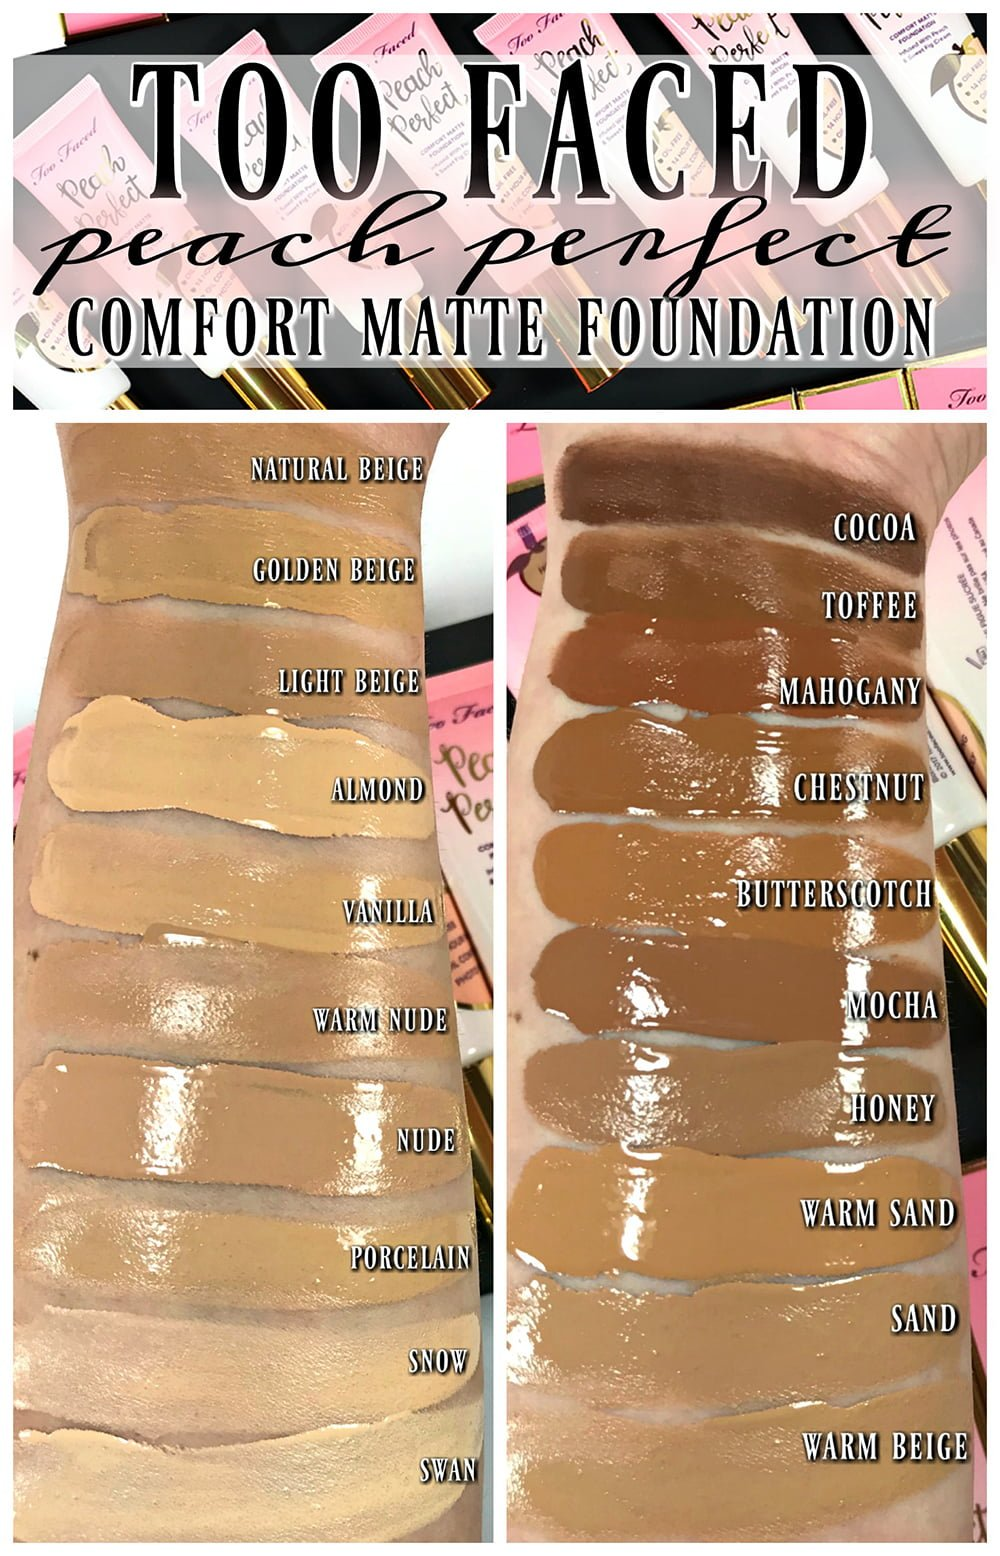 Too Faced Peach Perfect Comfort Matte Foundation Swatched Review